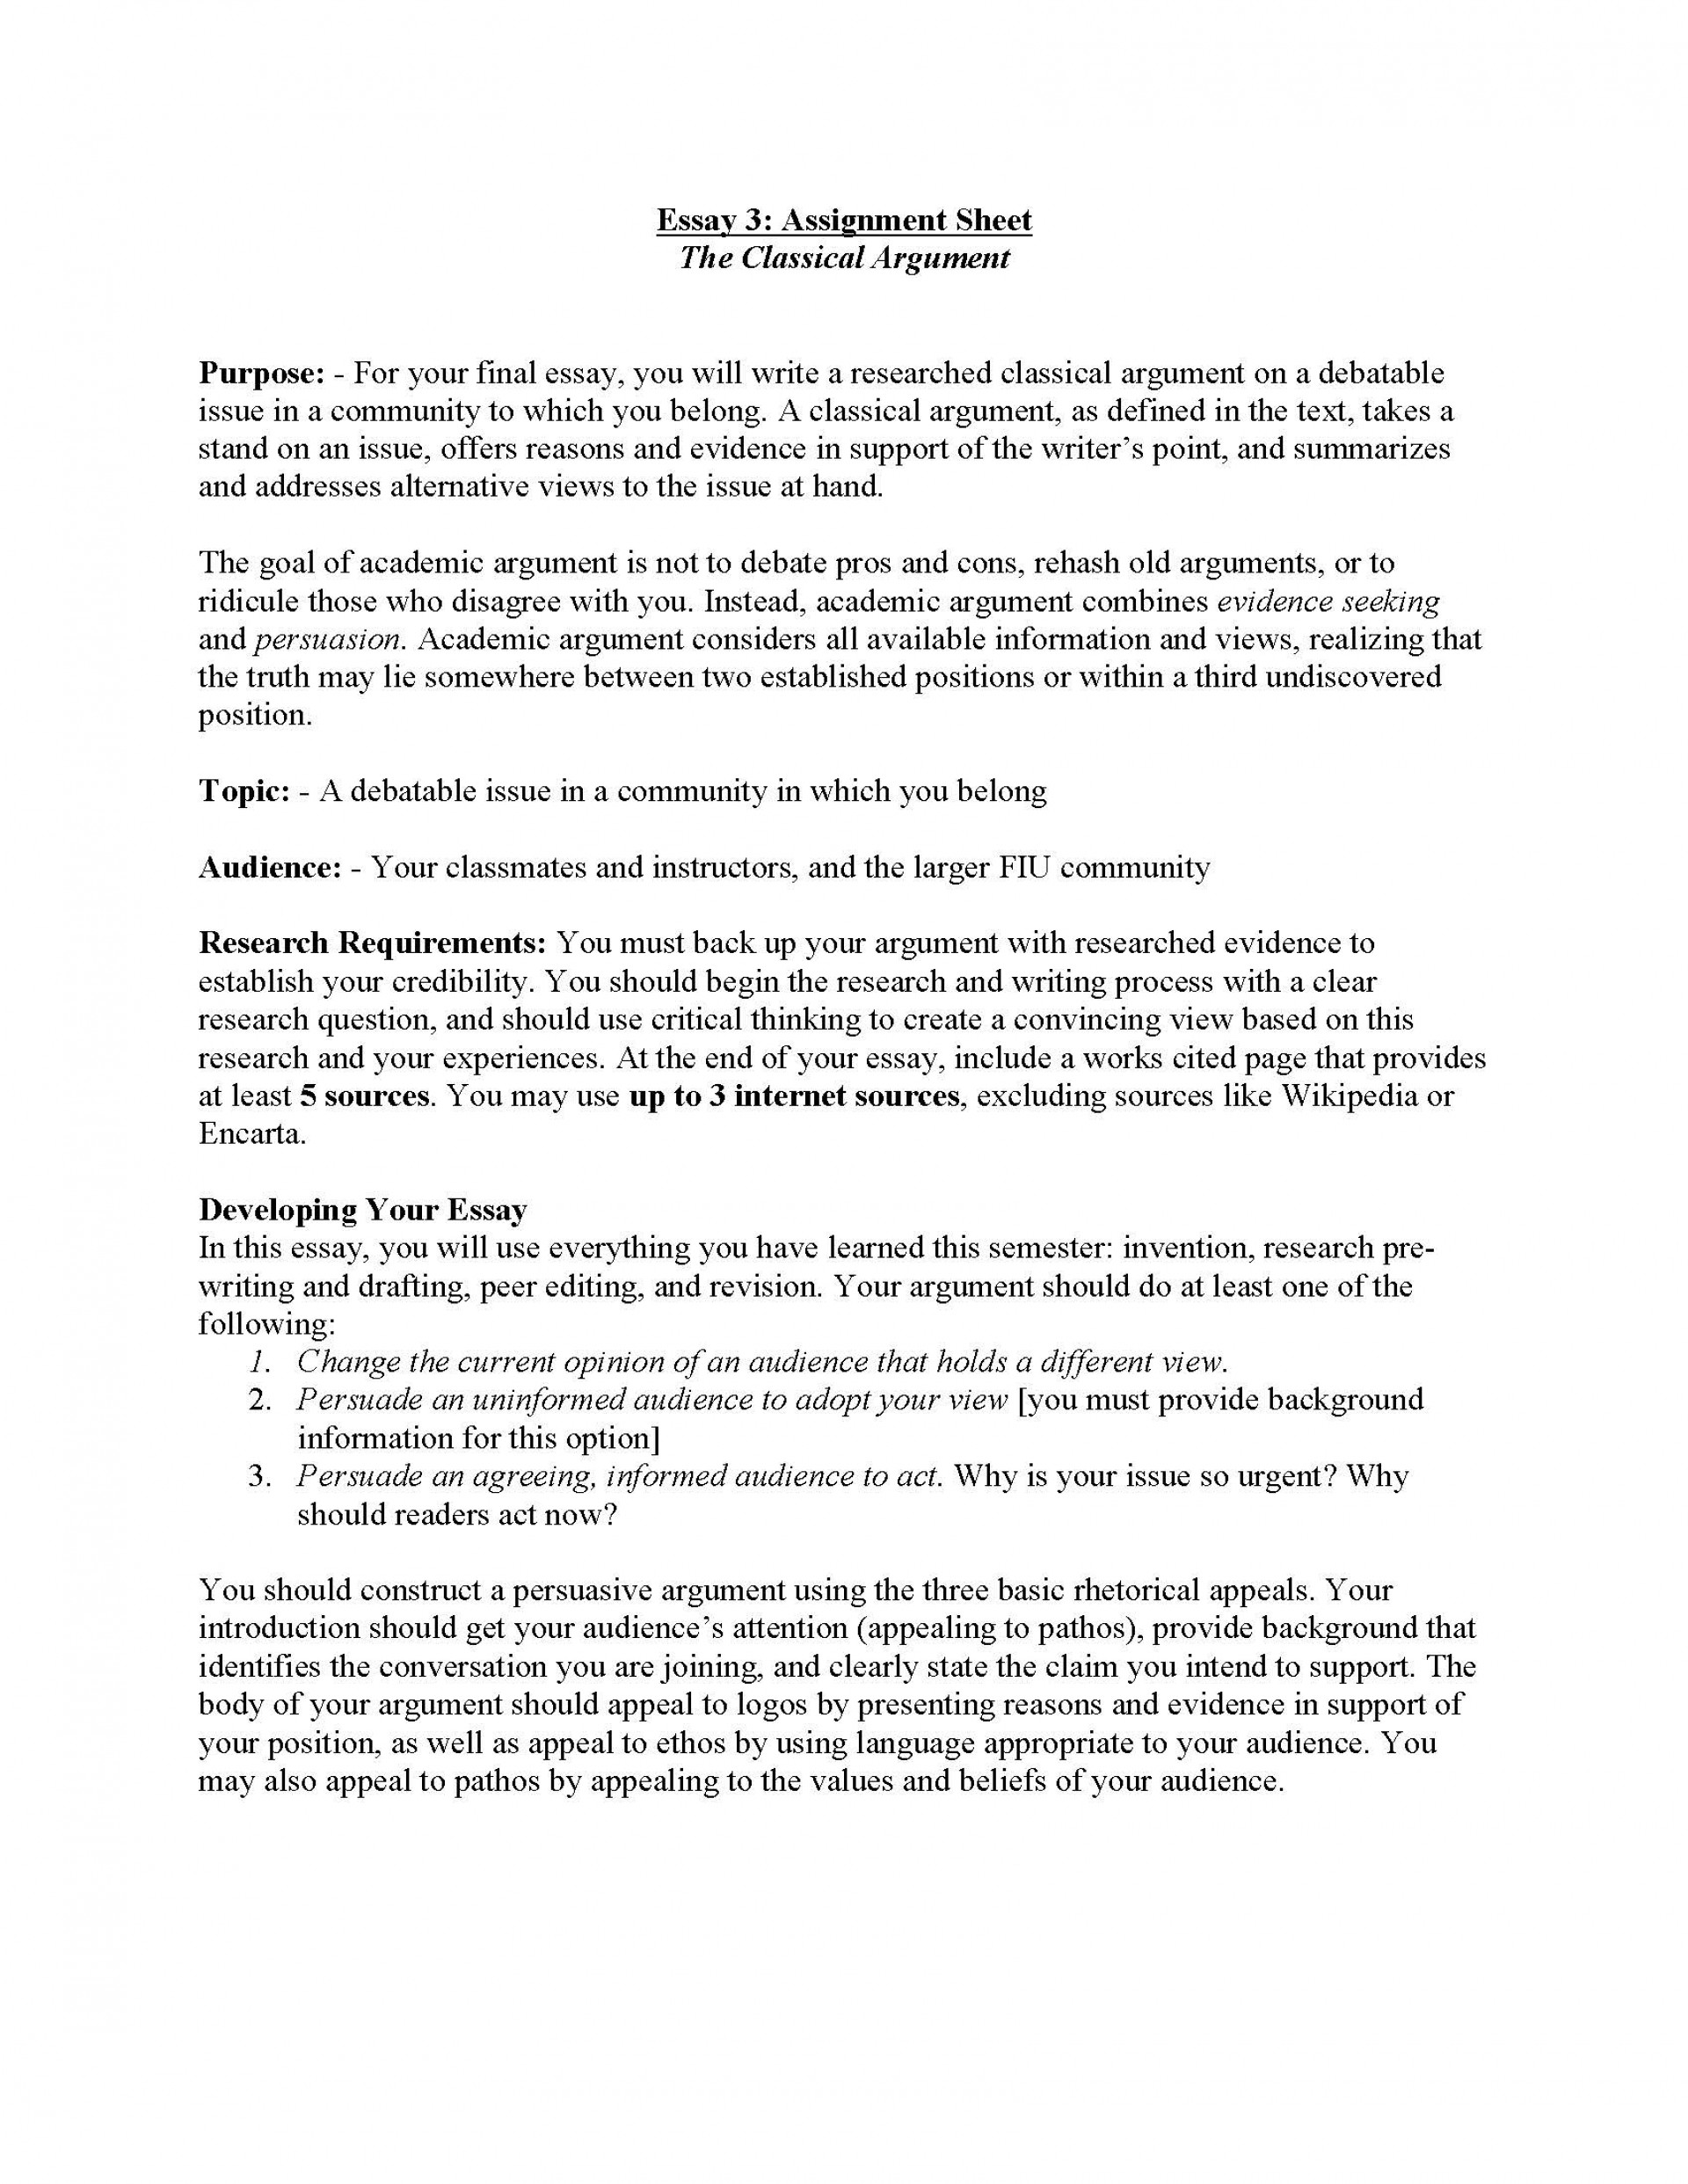 004 Essay Example Classical Argument Unit Assignment Page 1 About My Archaicawful Life As A Student Experience Of University And Peer Pressure 1920